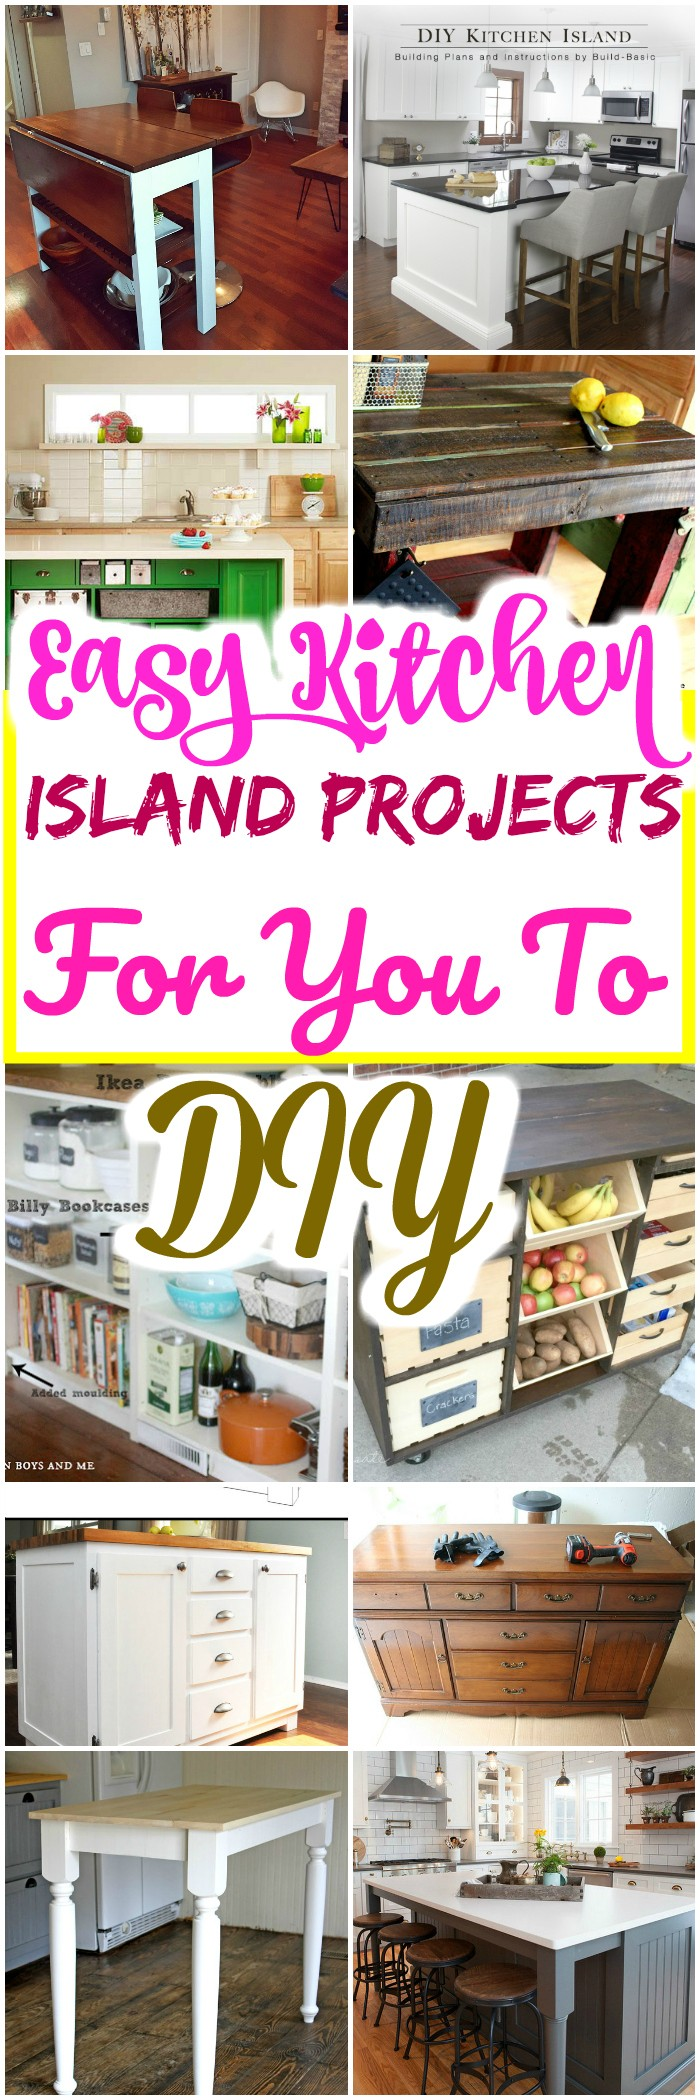 Kitchen Island Projects For You To DIY Easy Kitchen Island Projects For You To DIY